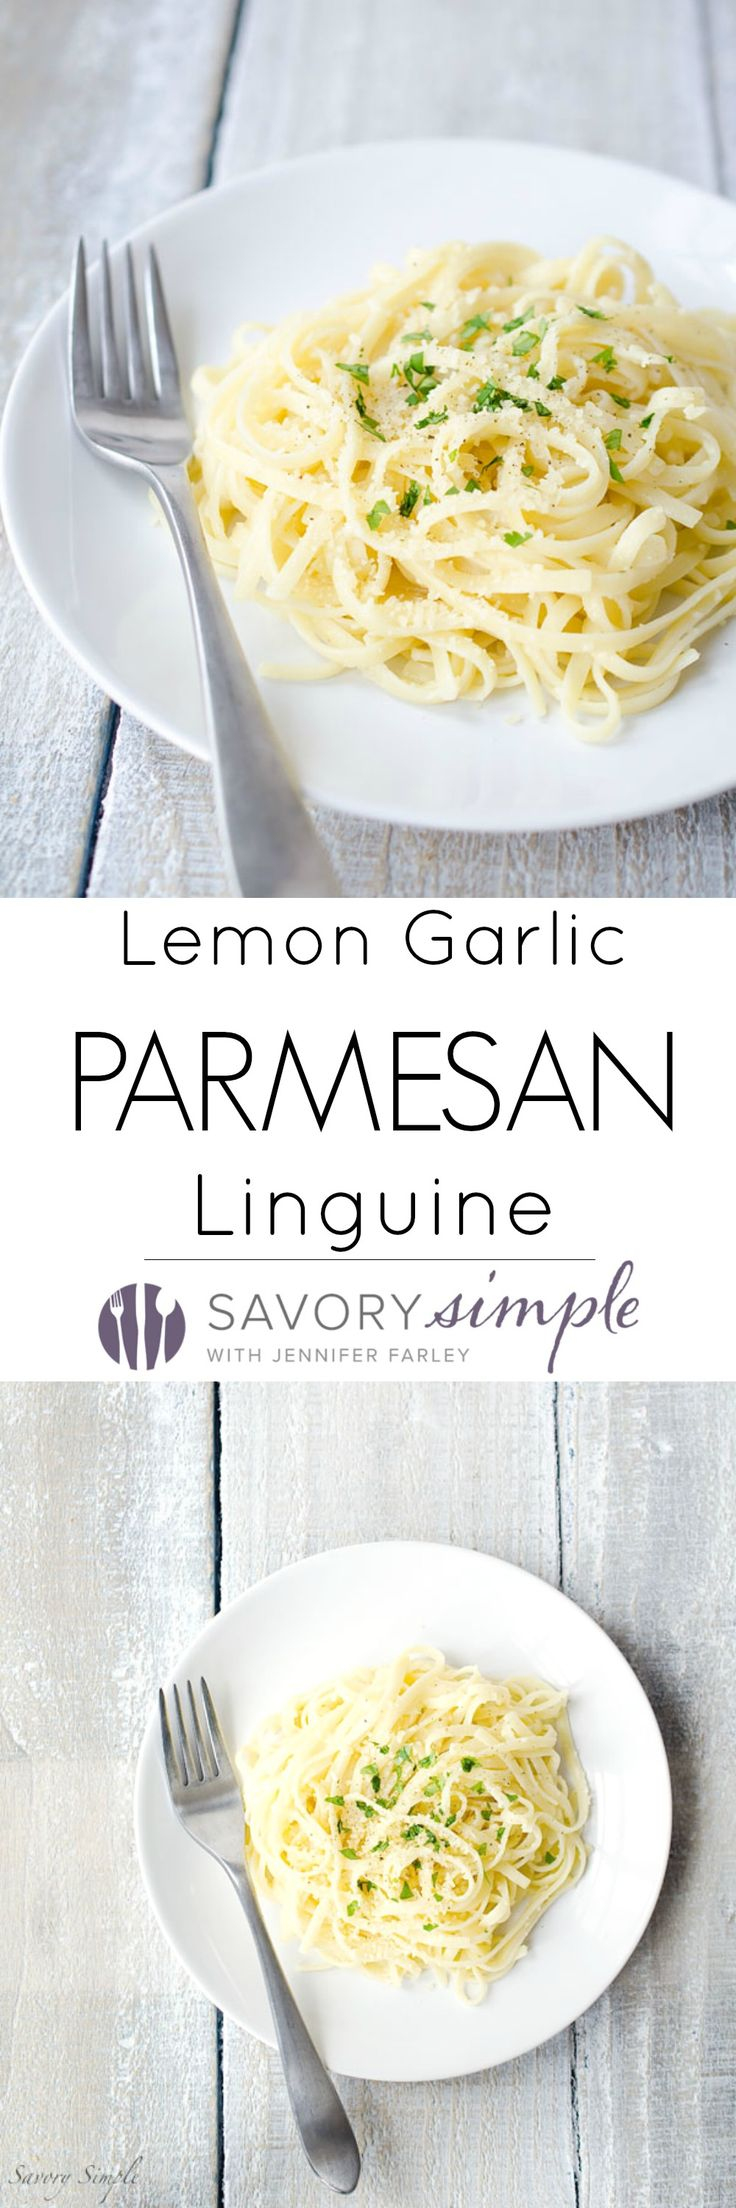 This Lemon Garlic Parmesan Linguine is a super easy dinner that's ready in under 20 minutes! Get the recipe from SavorySimple.net